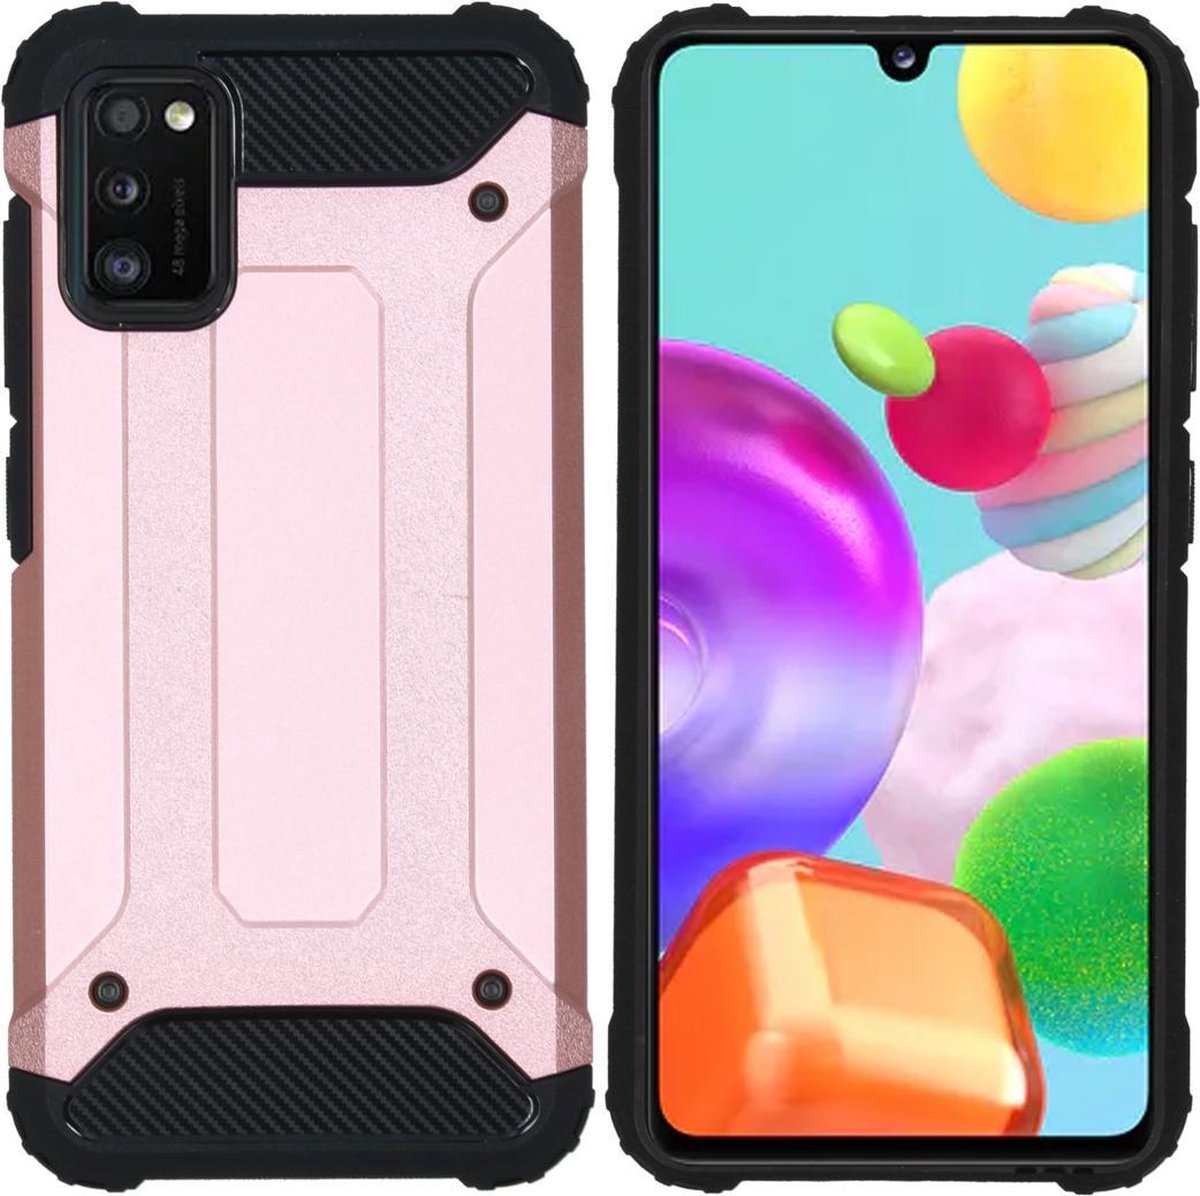 Afbeelding van product iMoshion Rugged Xtreme Backcover Samsung Galaxy A41 hoesje - Rosé Goud